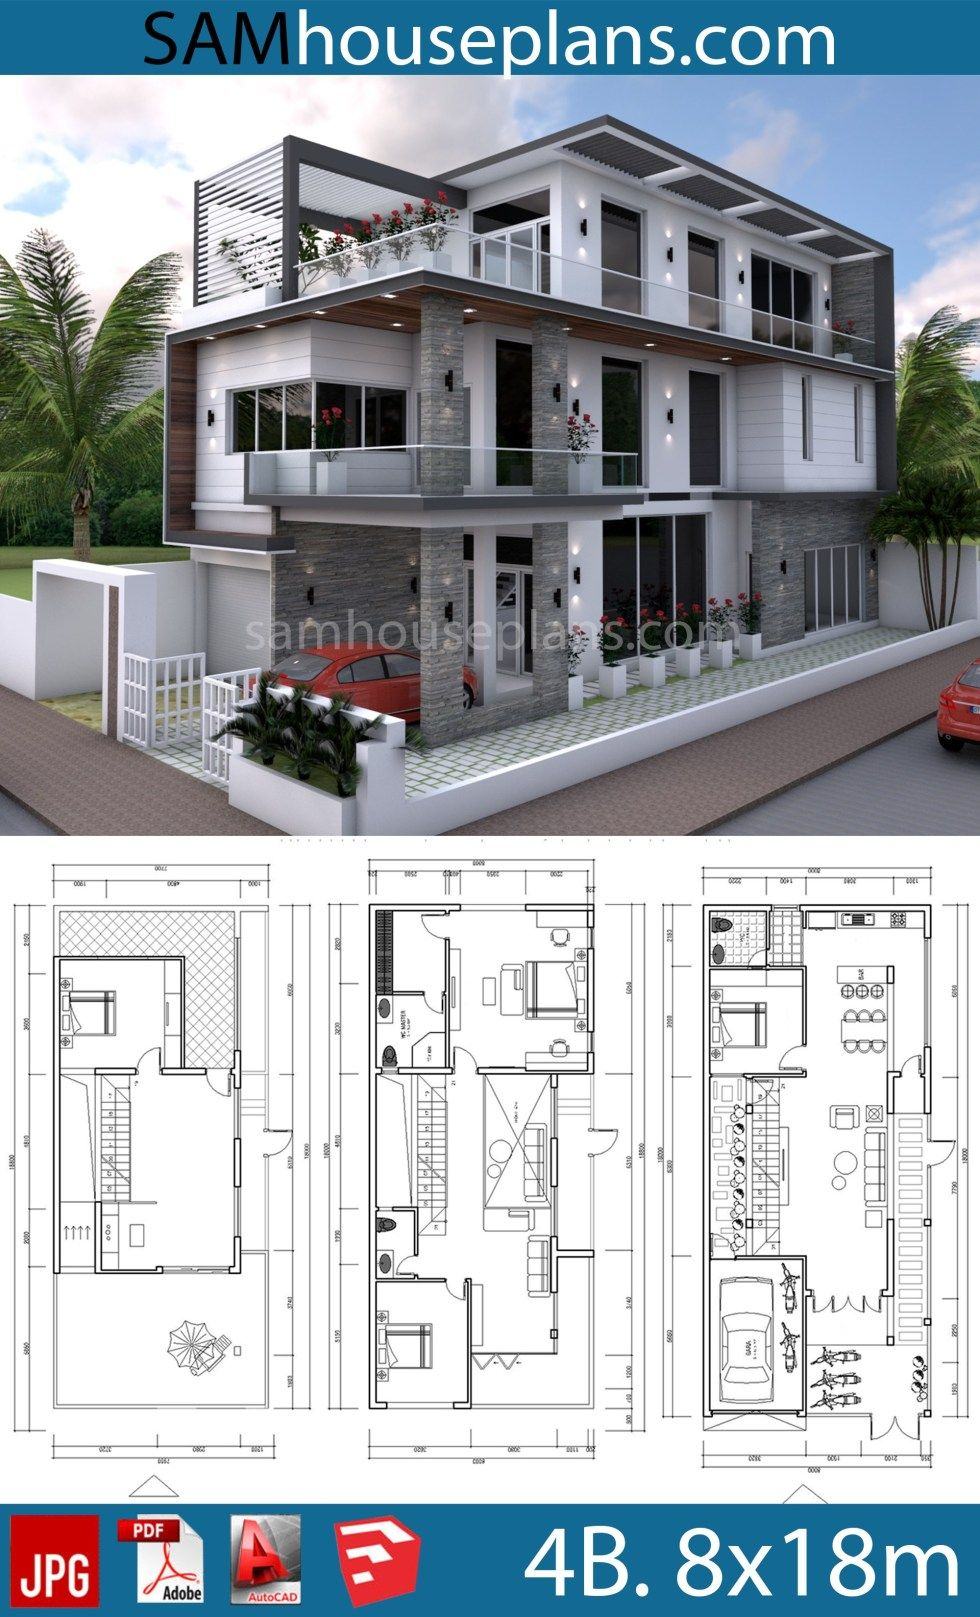 House Plans 8x18m With 4 Bedrooms Sam House Plans Luxury House Plans Dream House Plans House Layout Plans